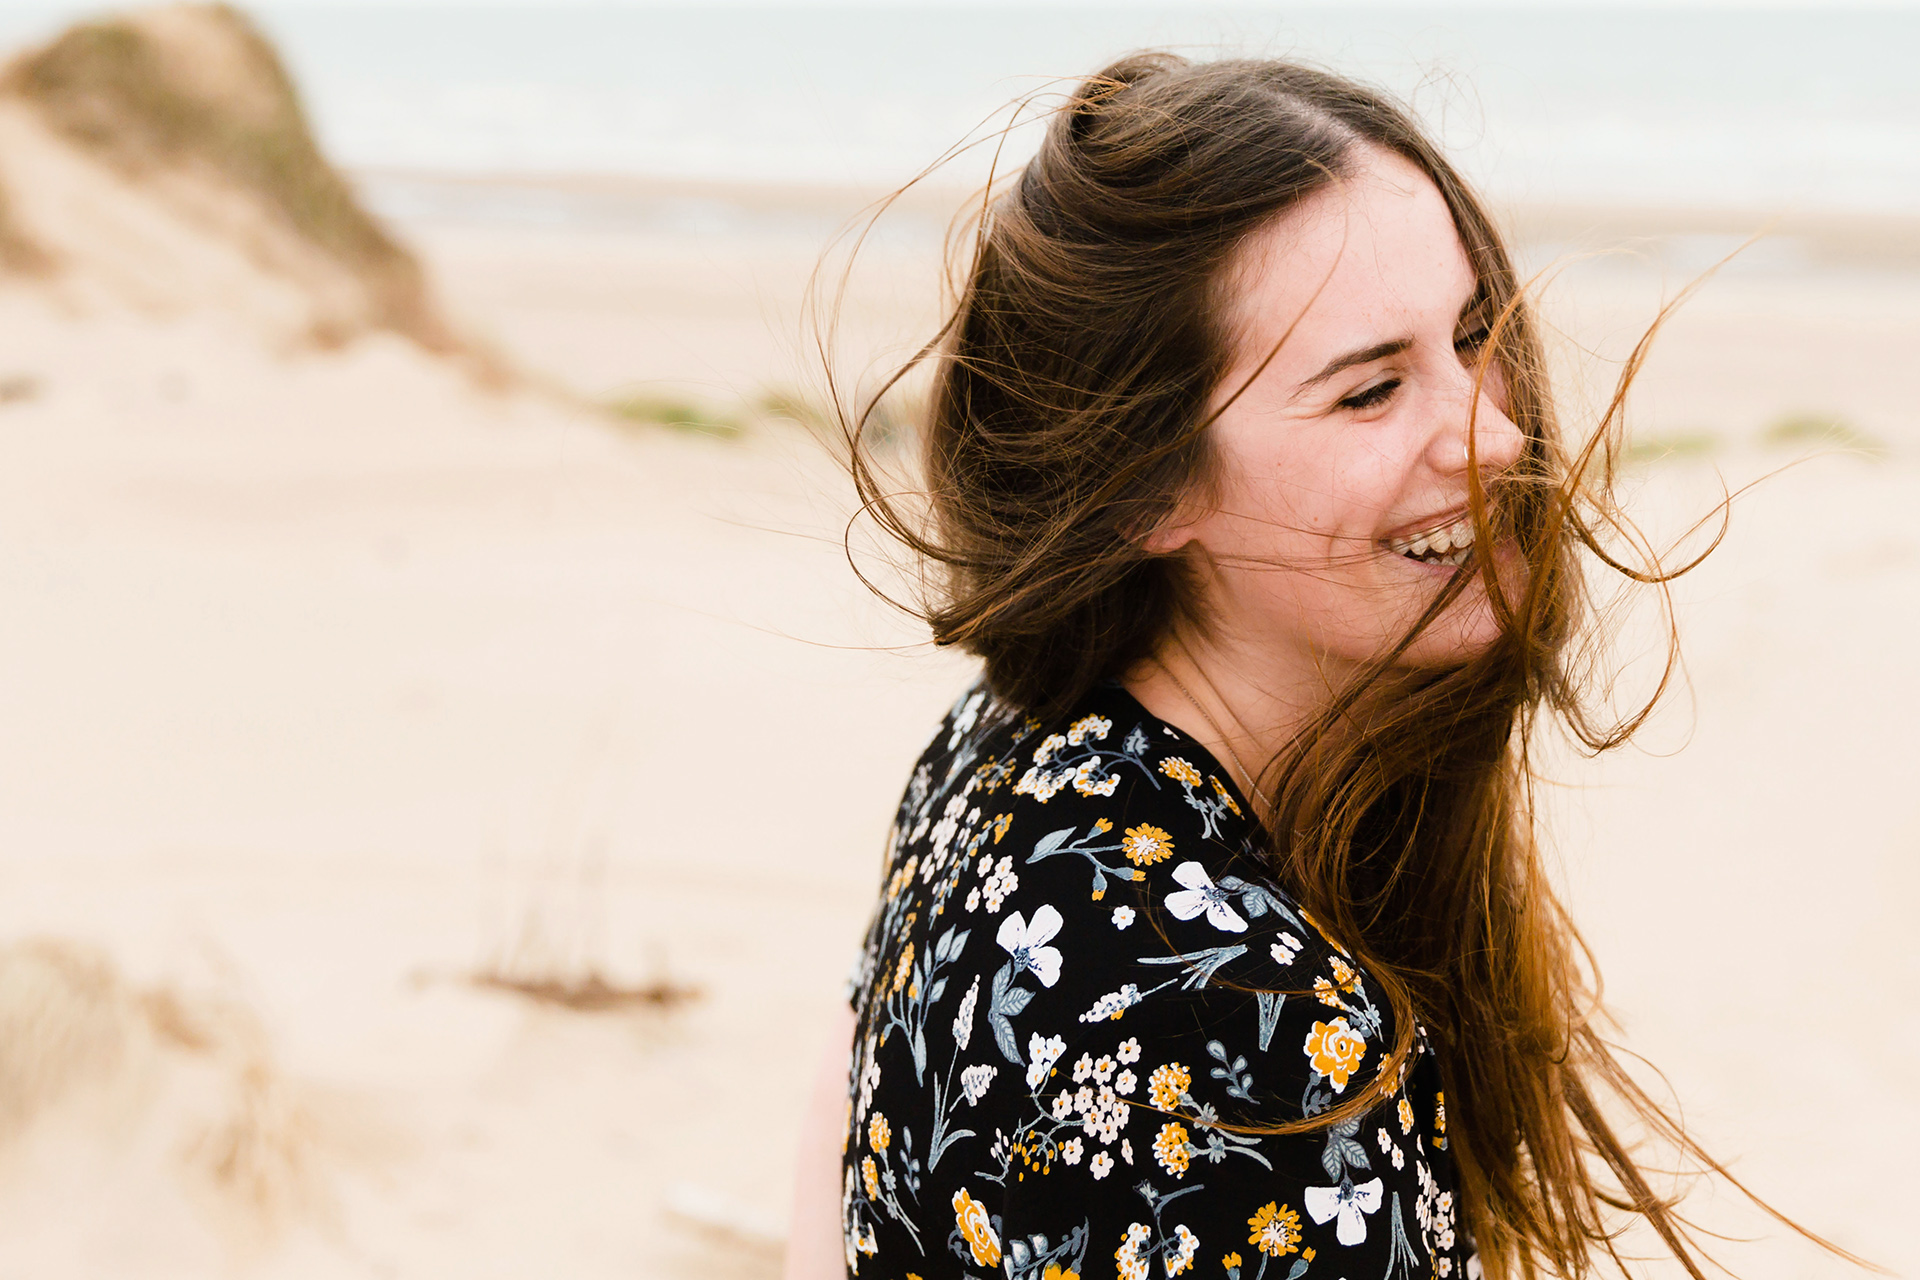 Portrait of laughing woman with blowing hair on the beach